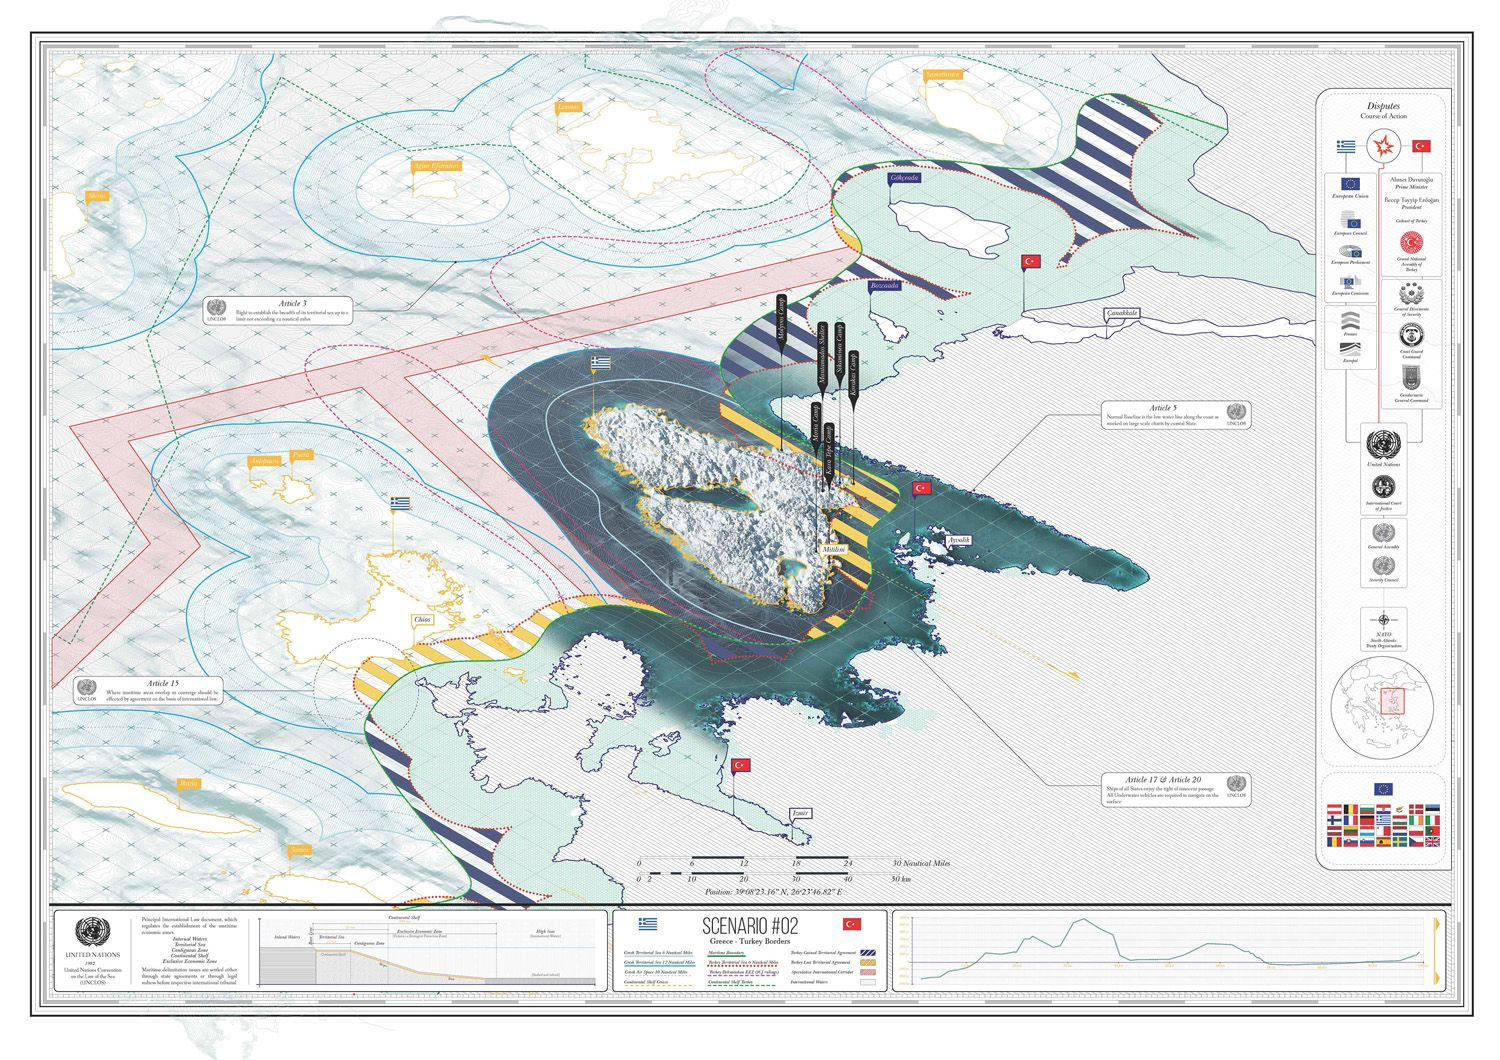 Ad Hoc Land S A Architecture Drawing Architecture Drawings Architecture Graphics